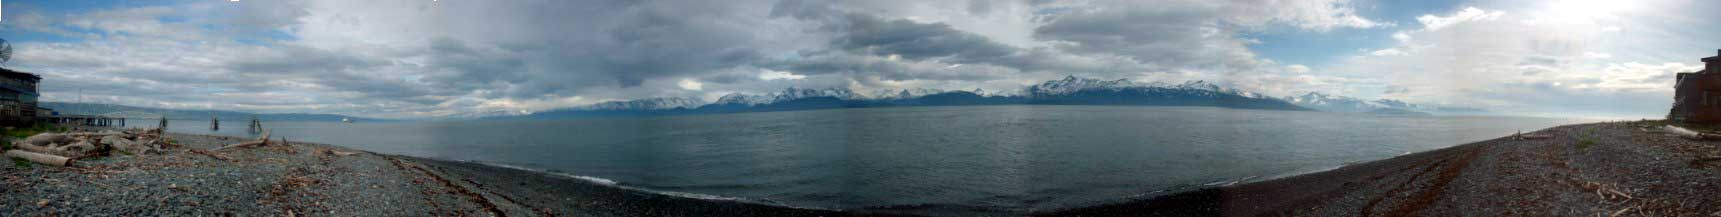 Panorama from the tip of Homer Spit